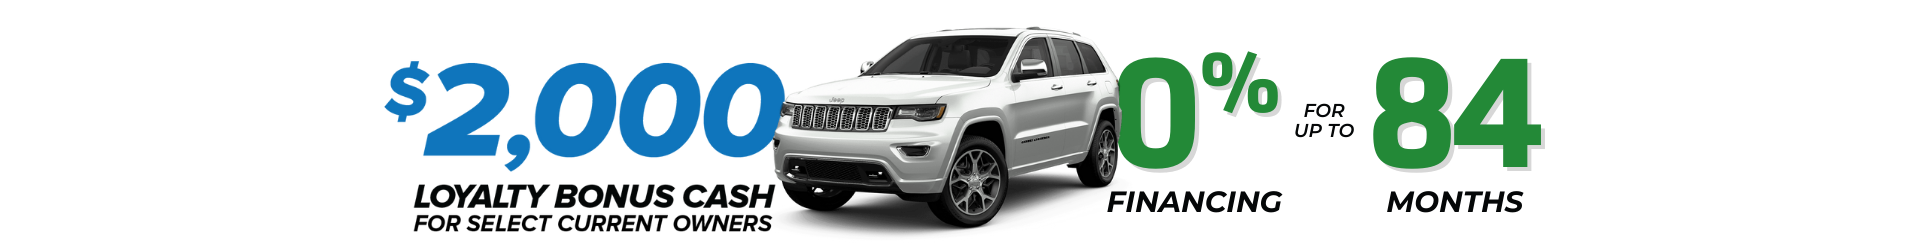 Get 0% financing for 84 months or up to $12,180 in Total Discounts on select 2021 Jeep Grand Cherokee